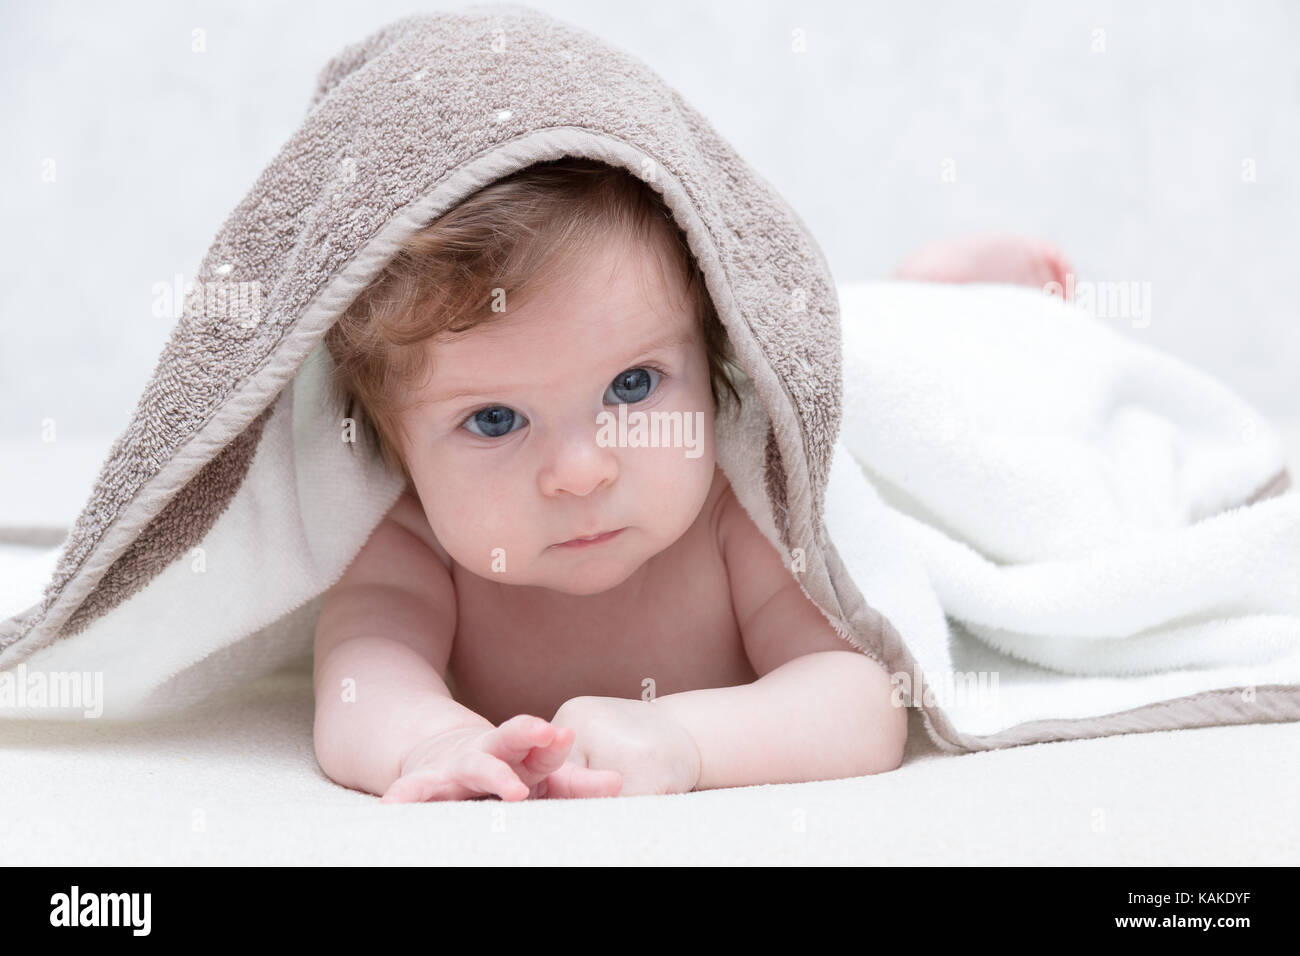 Cute newborn baby girl with beautiful blue eyes on a white terry coverlet adorable baby looking out under a white blanket or towel